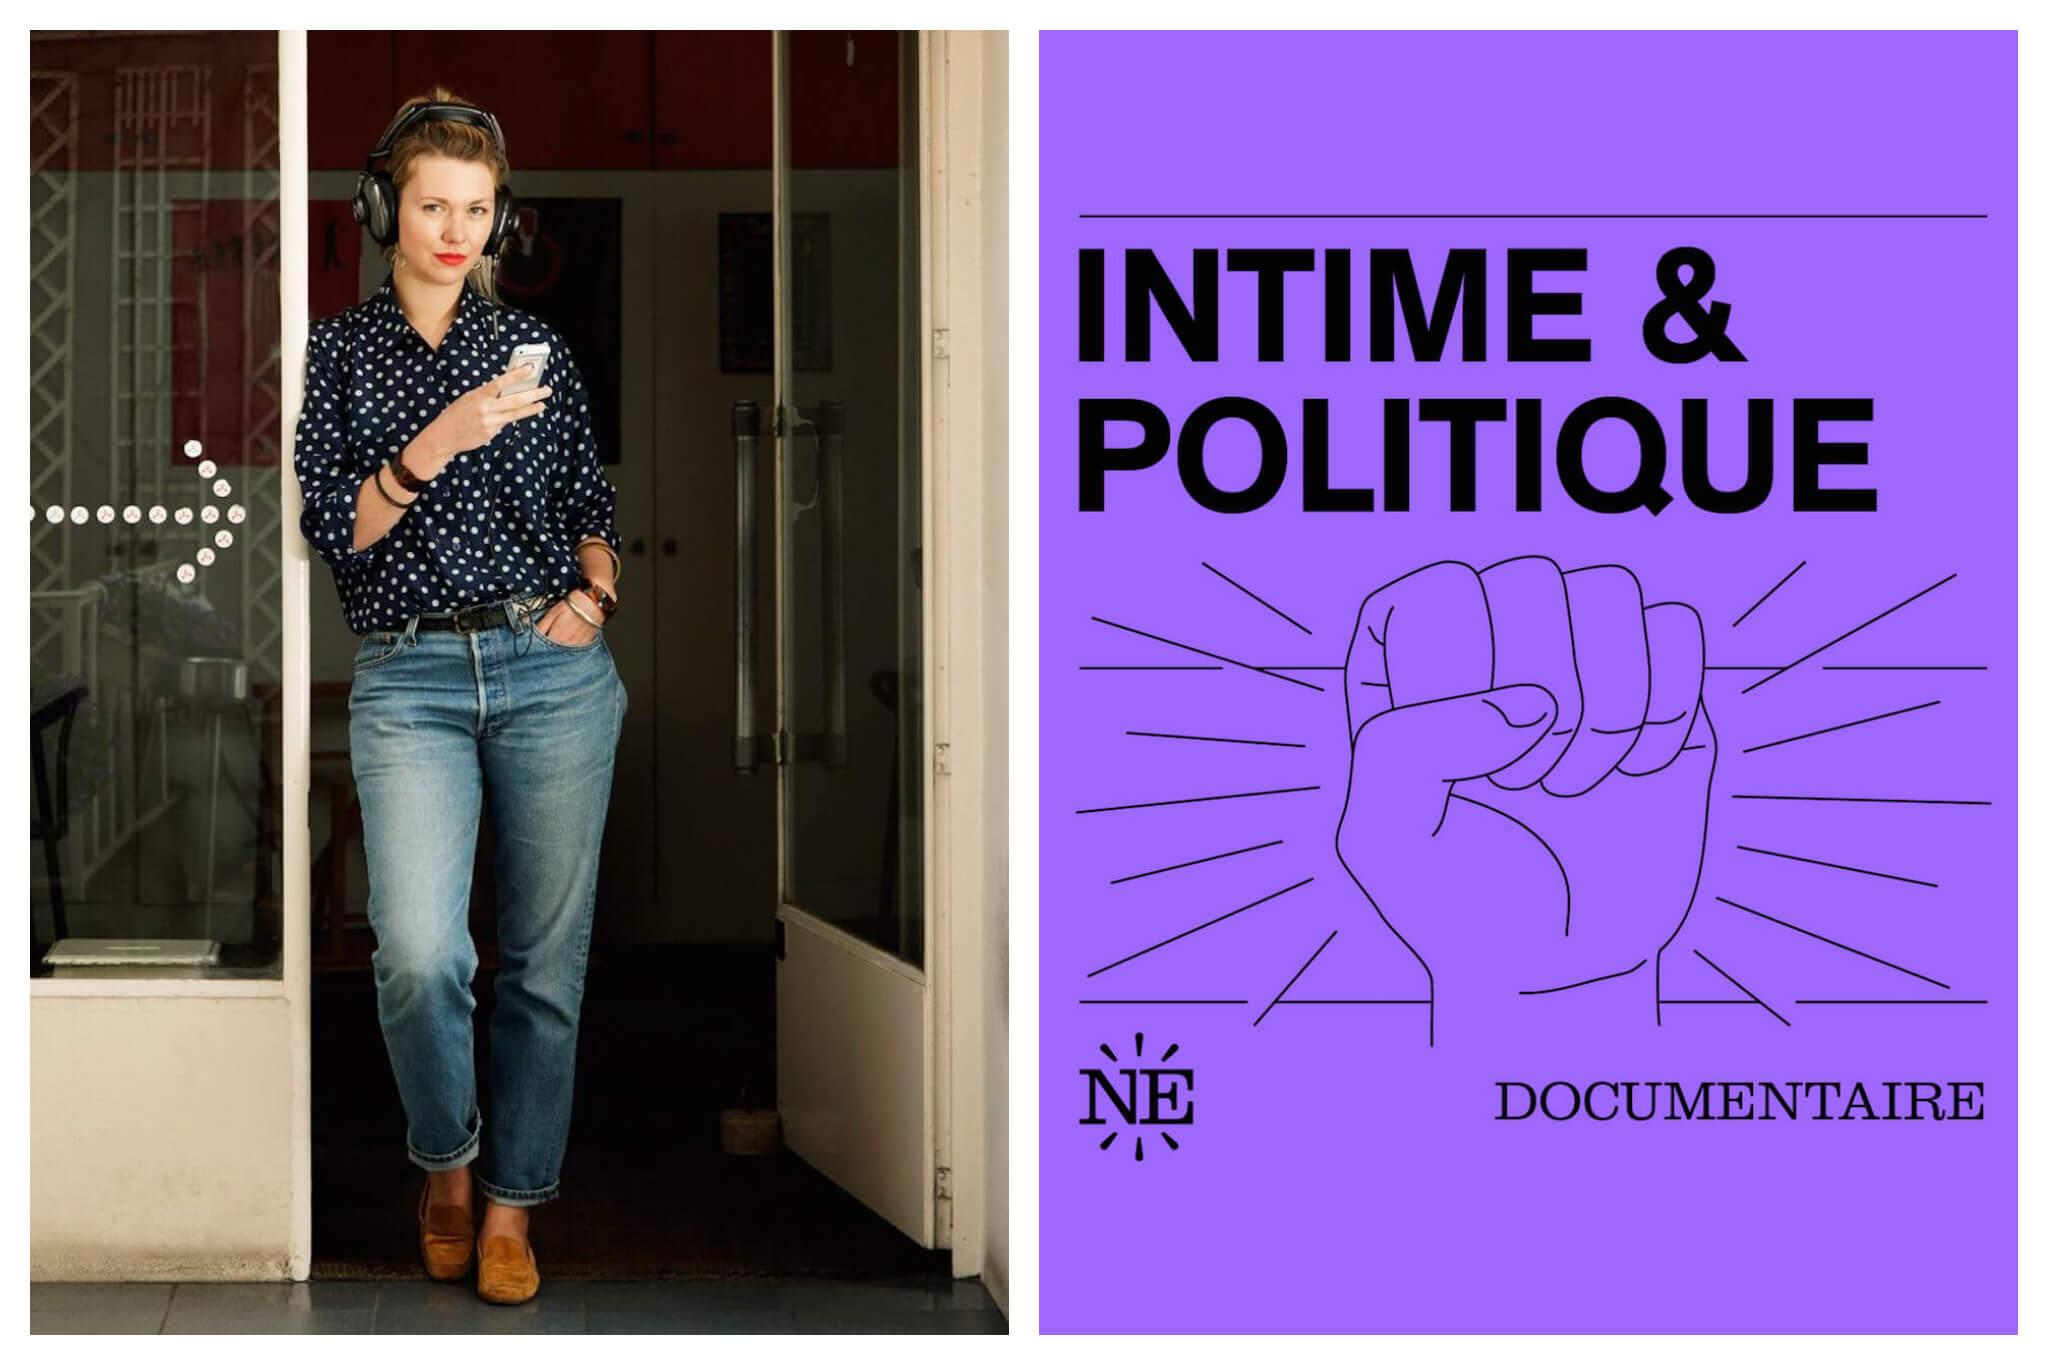 Left: Lauren Bastide, host of La Poudre podcast, stands in a doorway, looking at the camera. She has a pair of headphones on her head, her right hand holding her phone and her left hand in her pocket, Right: Cover of the Intime & Politique podcast, with the title in bold type and an illustration of a fist.